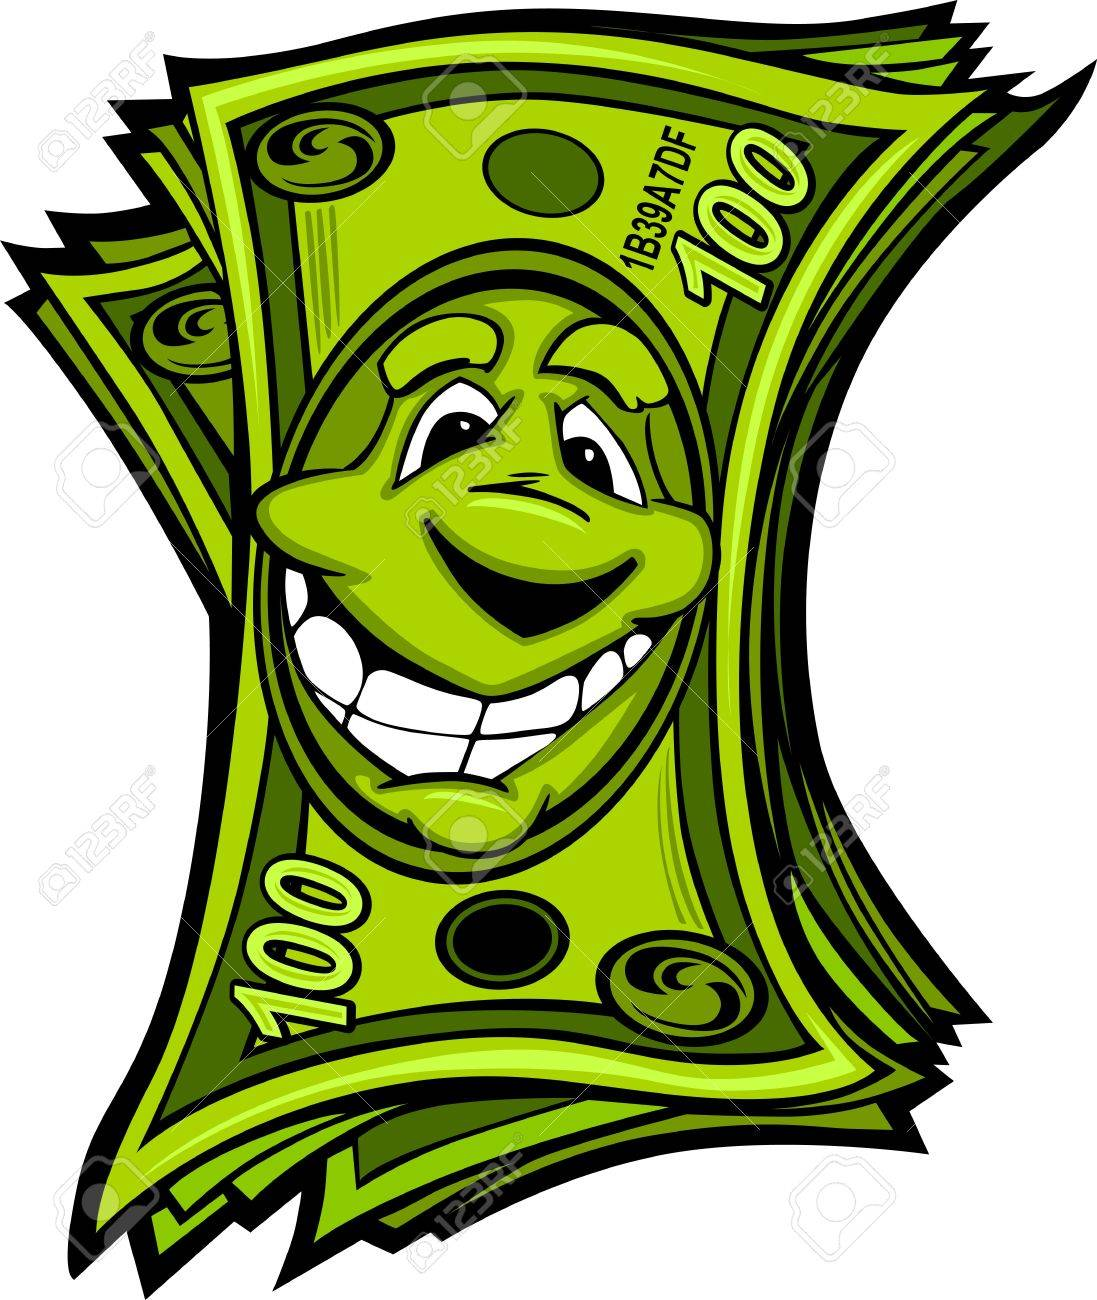 1097x1300 Cartoon Money Hundred Dollar Bills With Smiling Face Cartoon